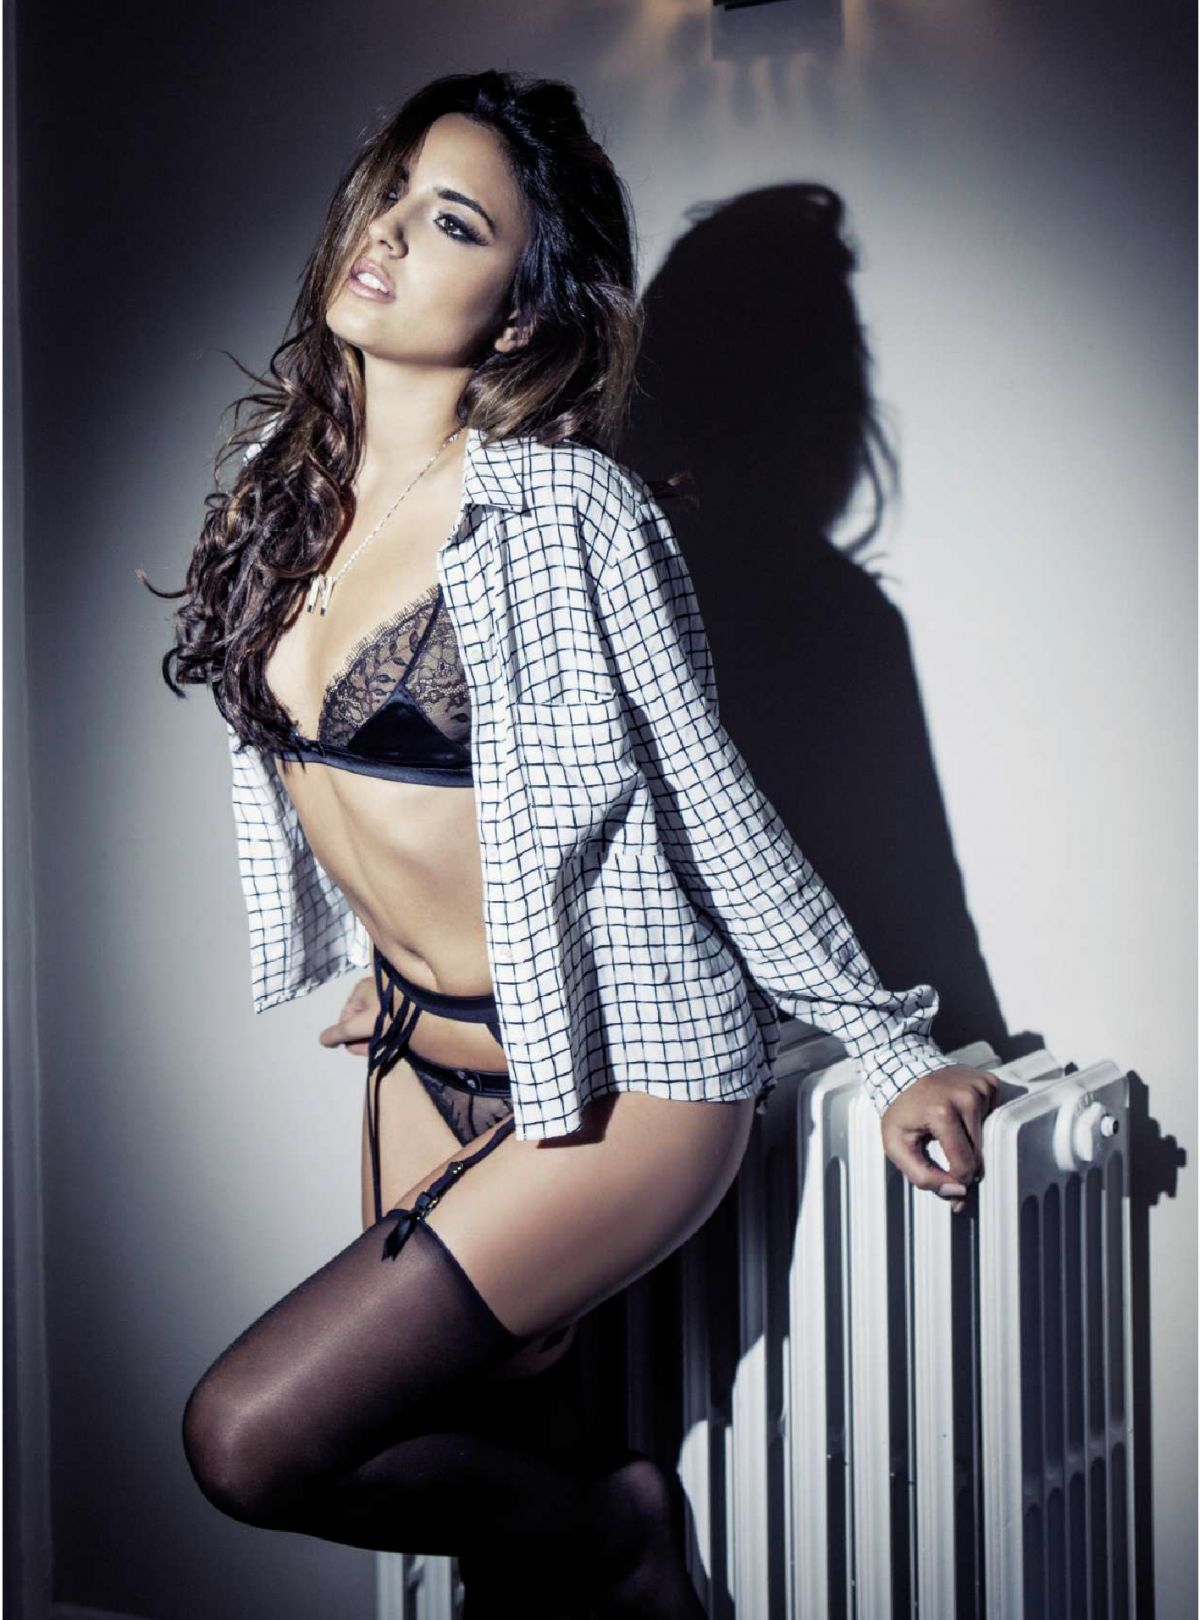 Nadia Forde In Fhm Magazine April 2015 Issue Hawtcelebs